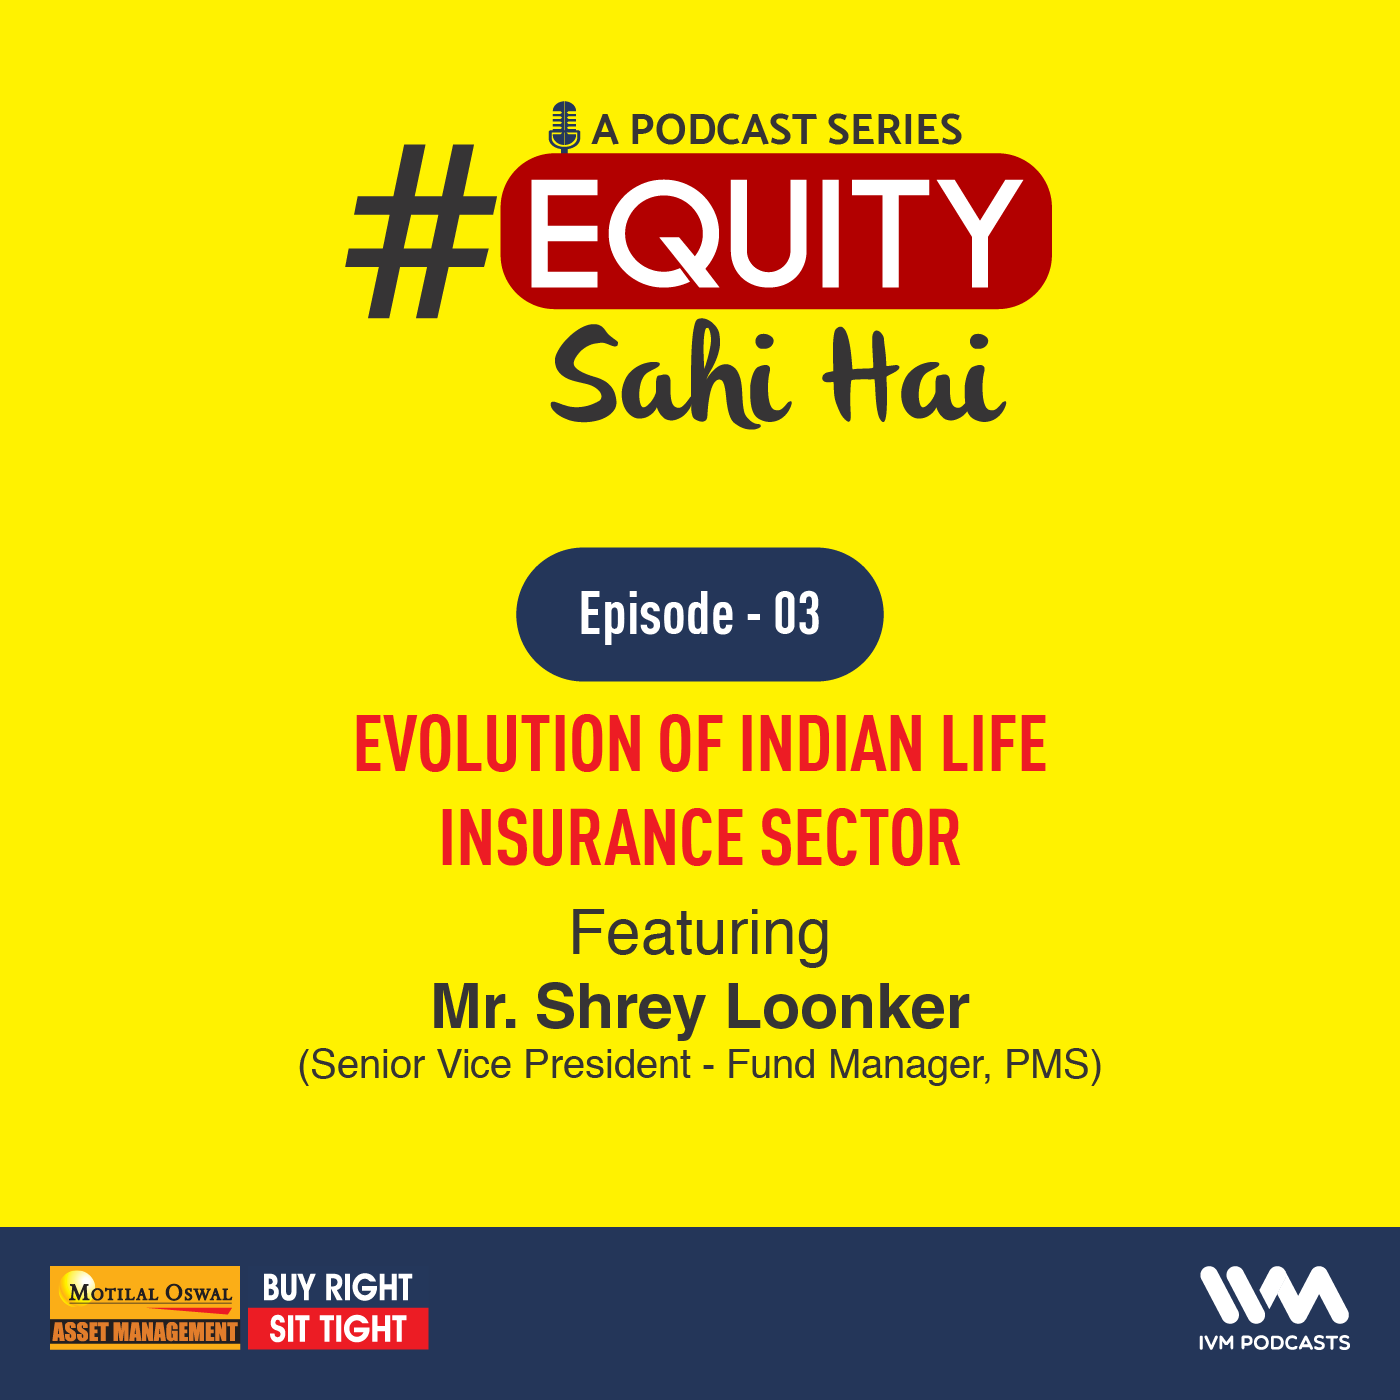 Ep. 03: Evolution of Indian Life Insurance Sector